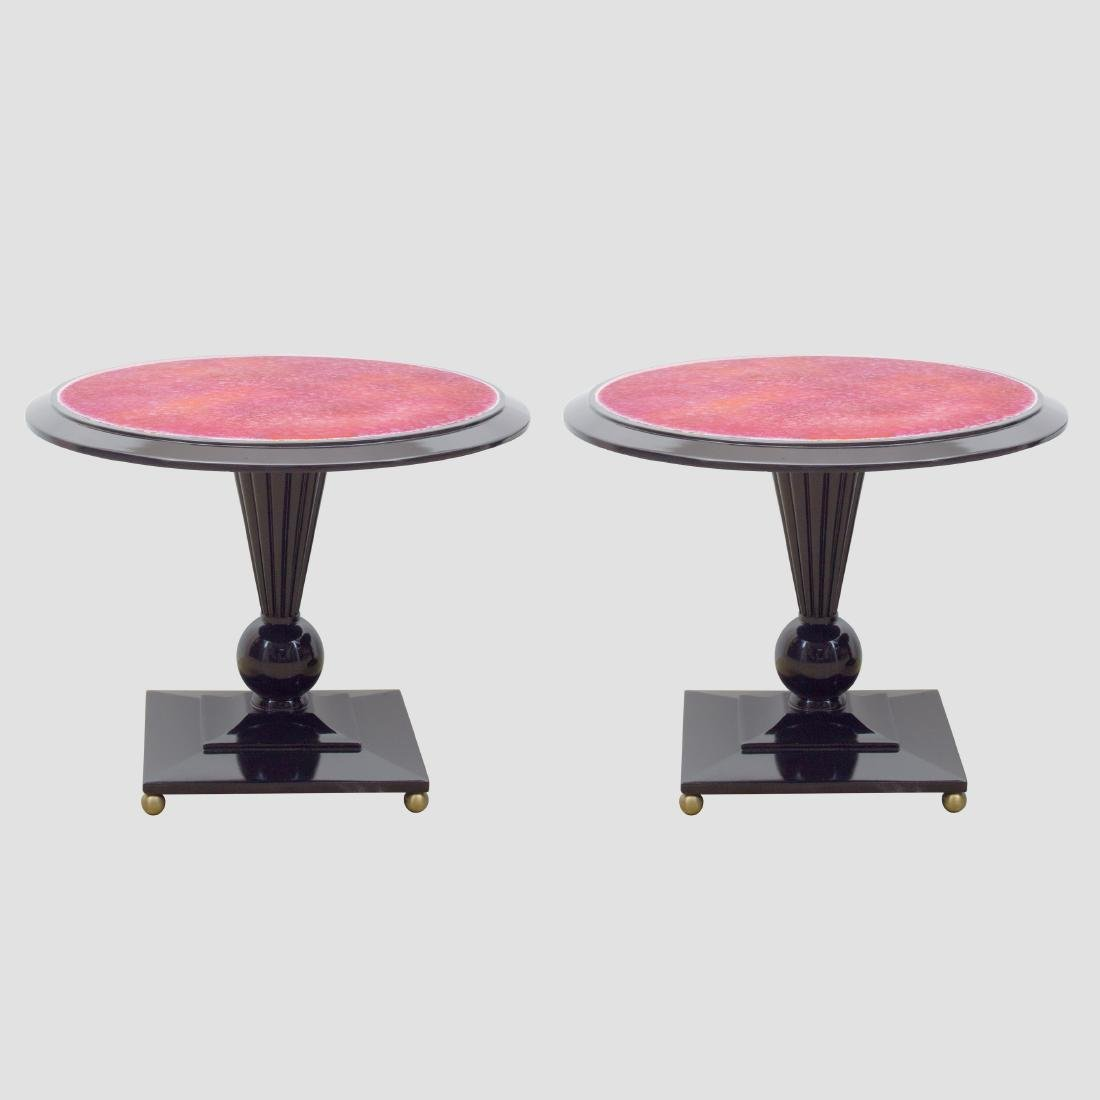 Side Tables by Doris Hall